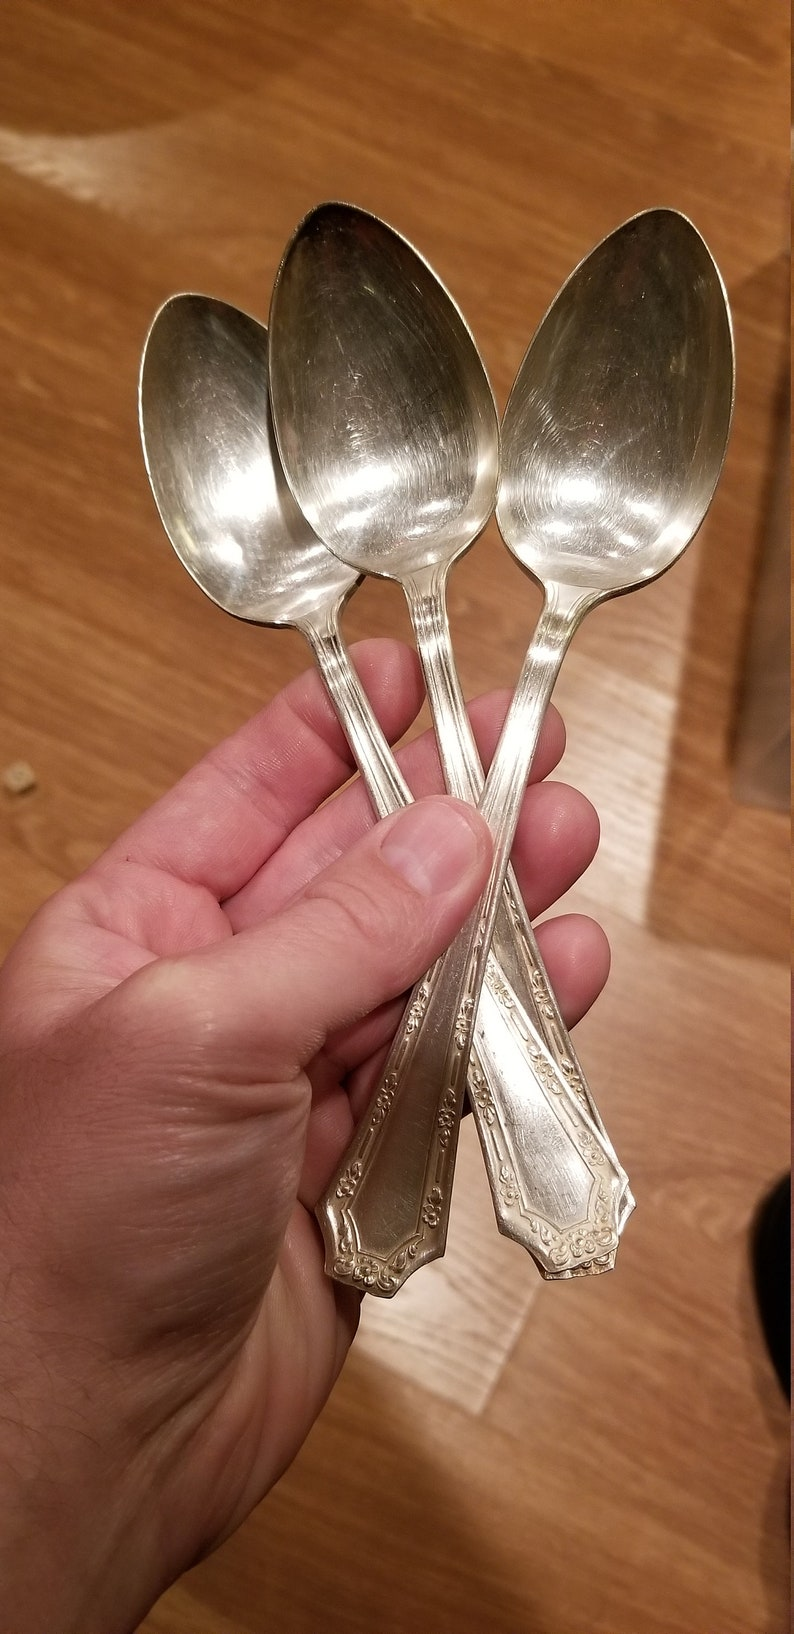 Set of 3 Alpha patter fair field silver plate spoons 7 inches